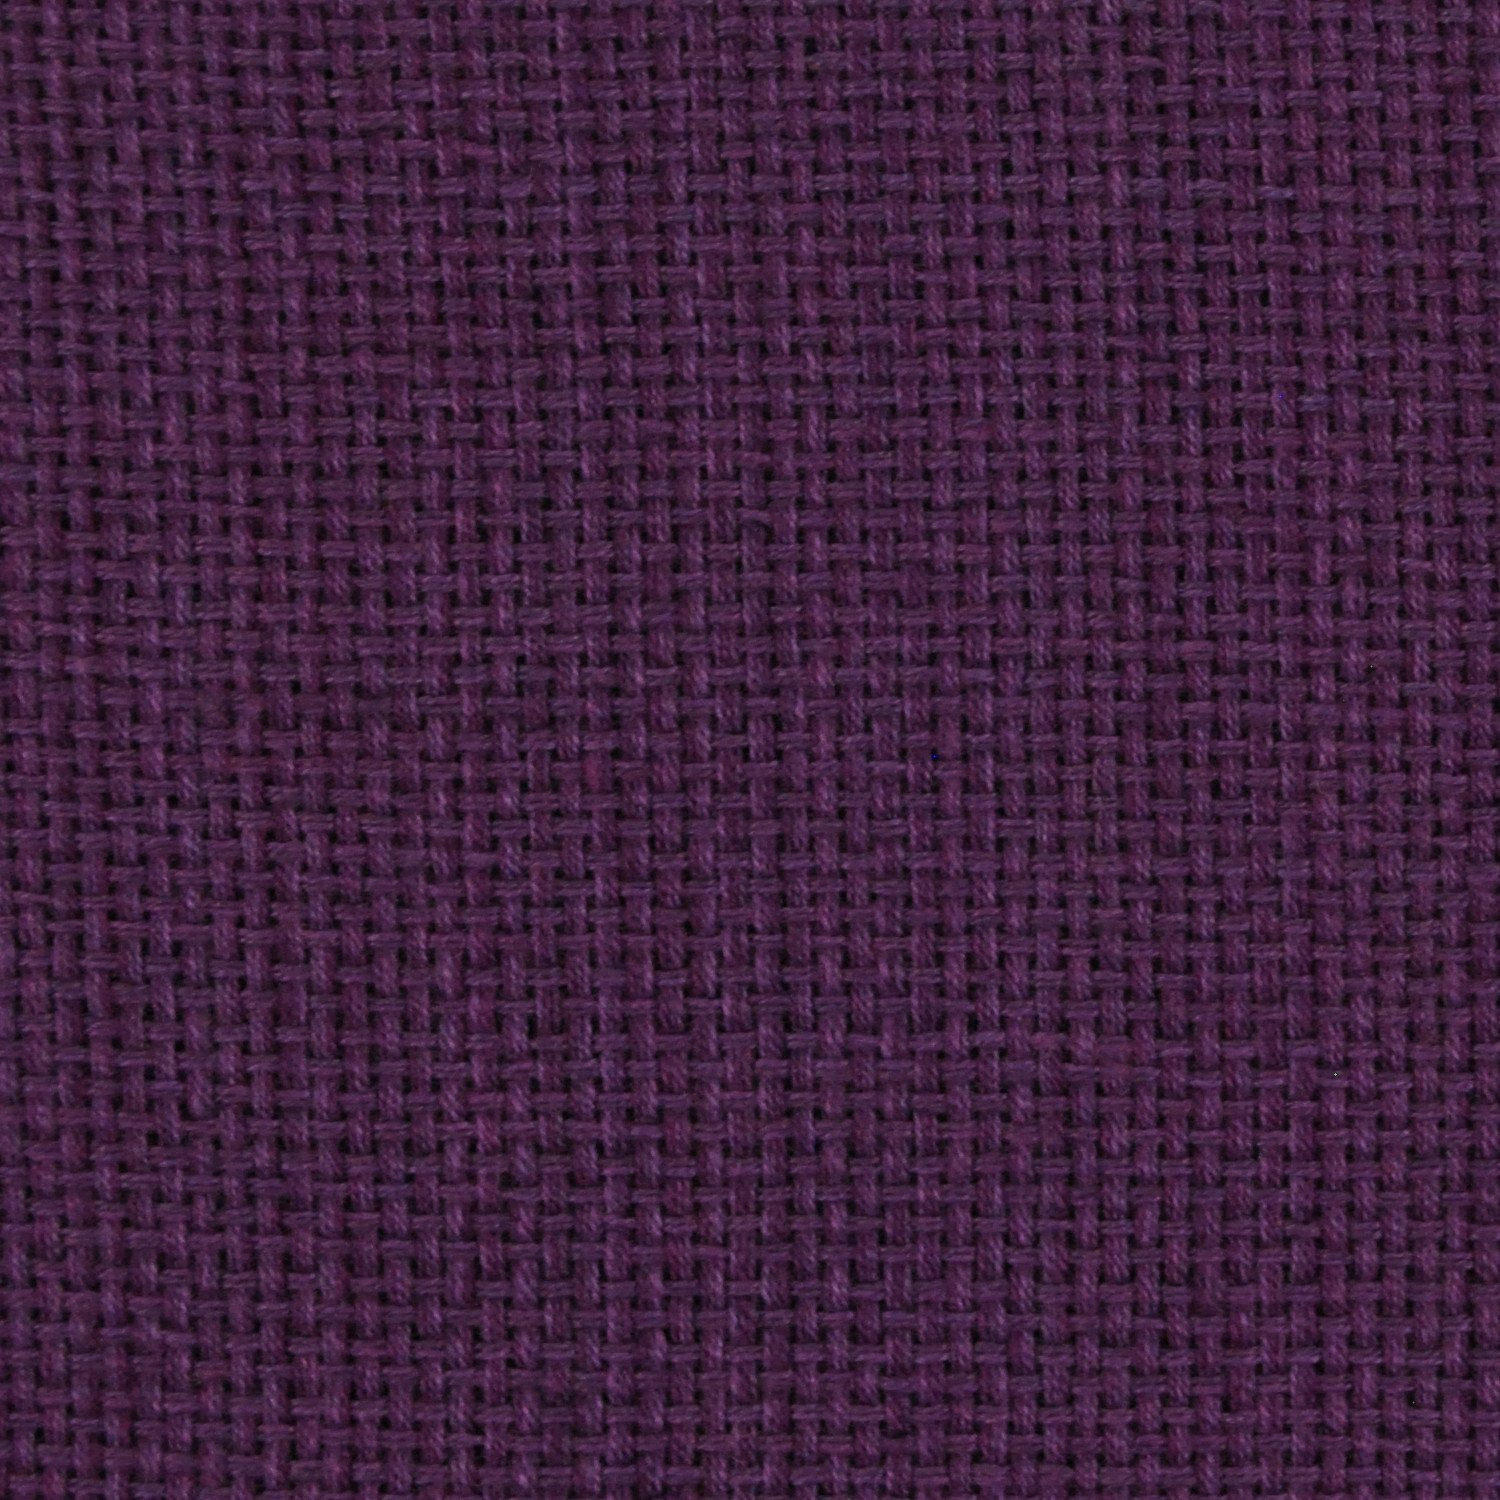 DII Oversized 20x20 Cotton Napkin, Pack of 6, Variegated Eggplant Purple - Perfect for Fall, Halloween, Dinner Parties, BBQs and Everyday Use by DII (Image #3)